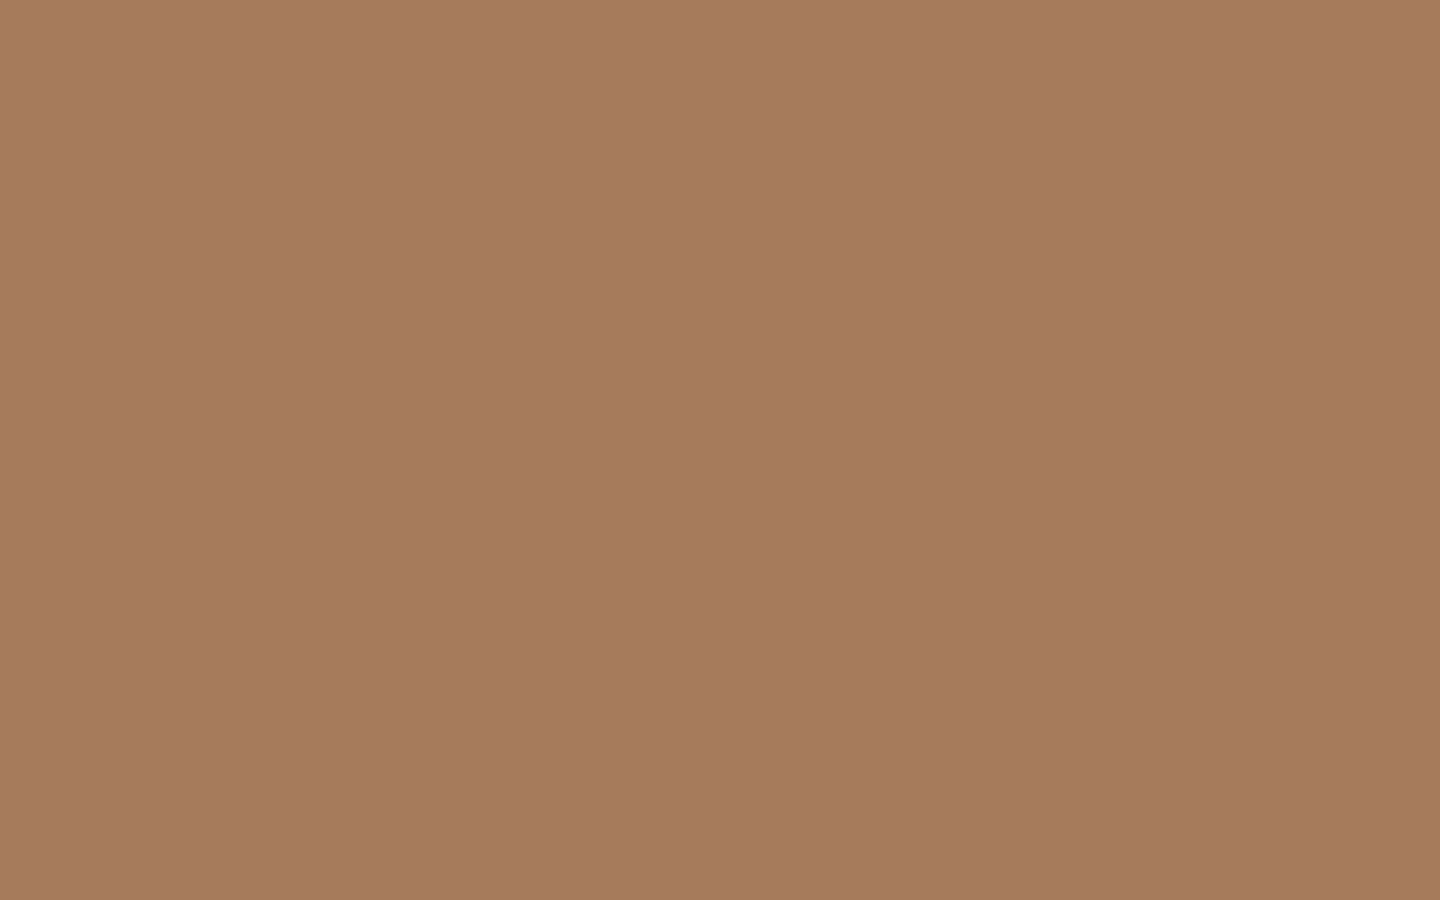 1440x900 Tuscan Tan Solid Color Background